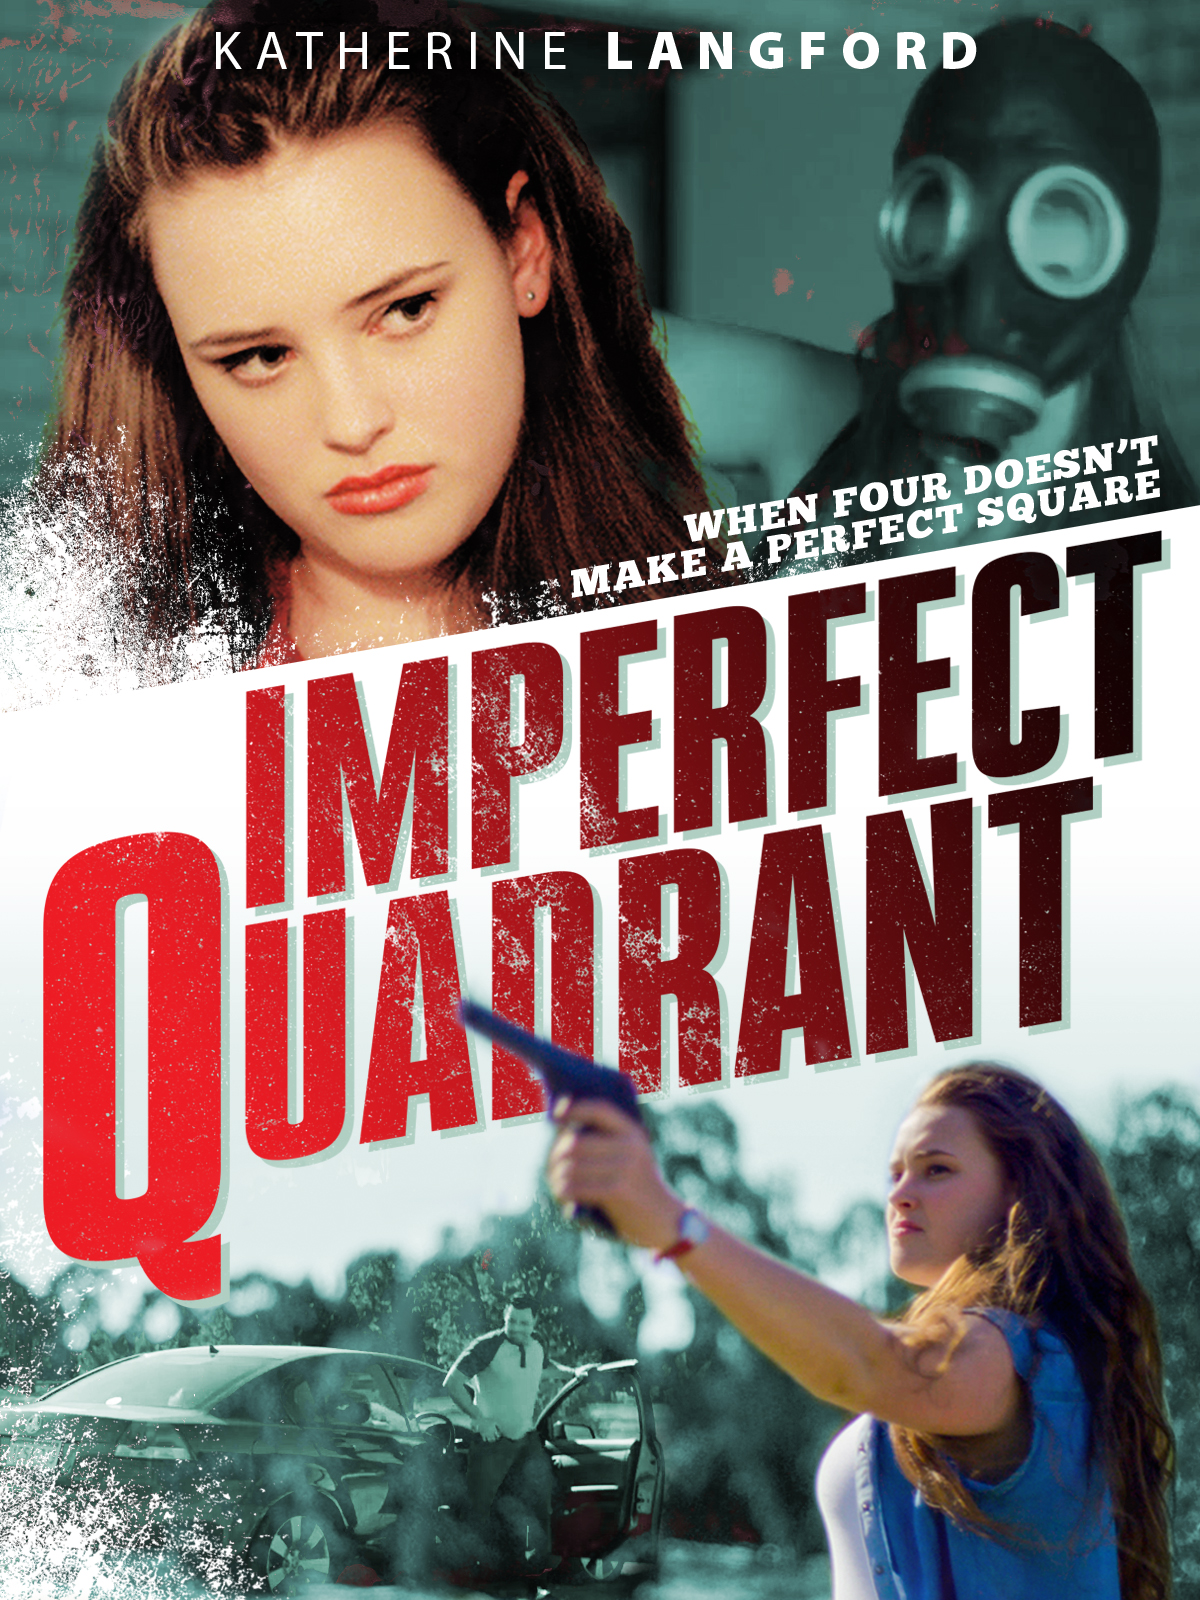 Imperfect Quadrant Streaming Now A Caper In The Outback Goes South In This Suspenseful Film From Director Pann Murujaiyan And Star Katherine Langford Newswire